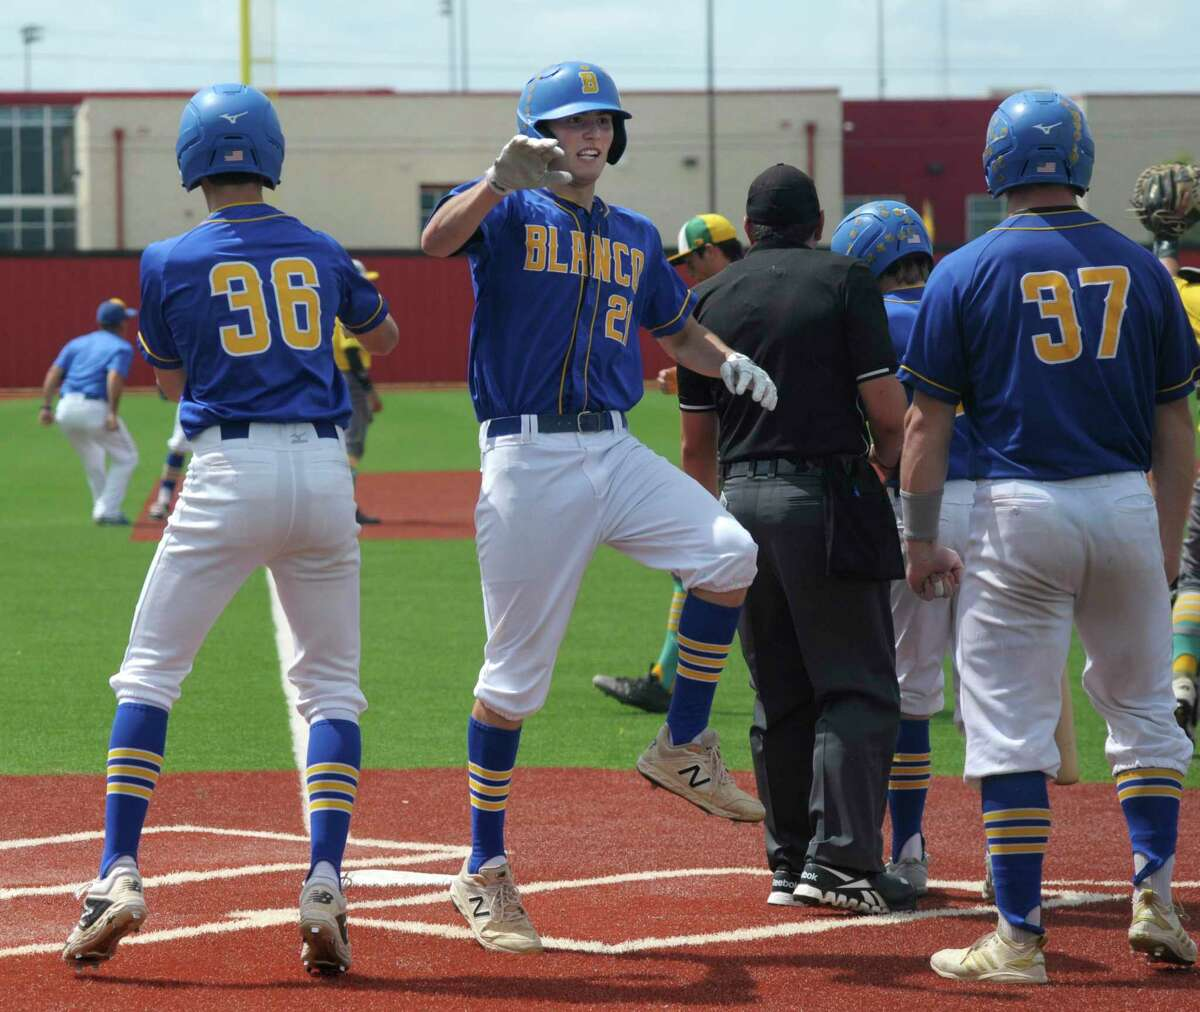 Blanco's Justin Wardlow (21) celebrates with teammates after scoring on a 7th-inning three-RBI triple by teammate Baylor Smith during Game 2 of the 3A regional final playoff series against Bishop in Jourdanton on Saturday, June 1, 2019. Blanco won and advances to the state tournament.